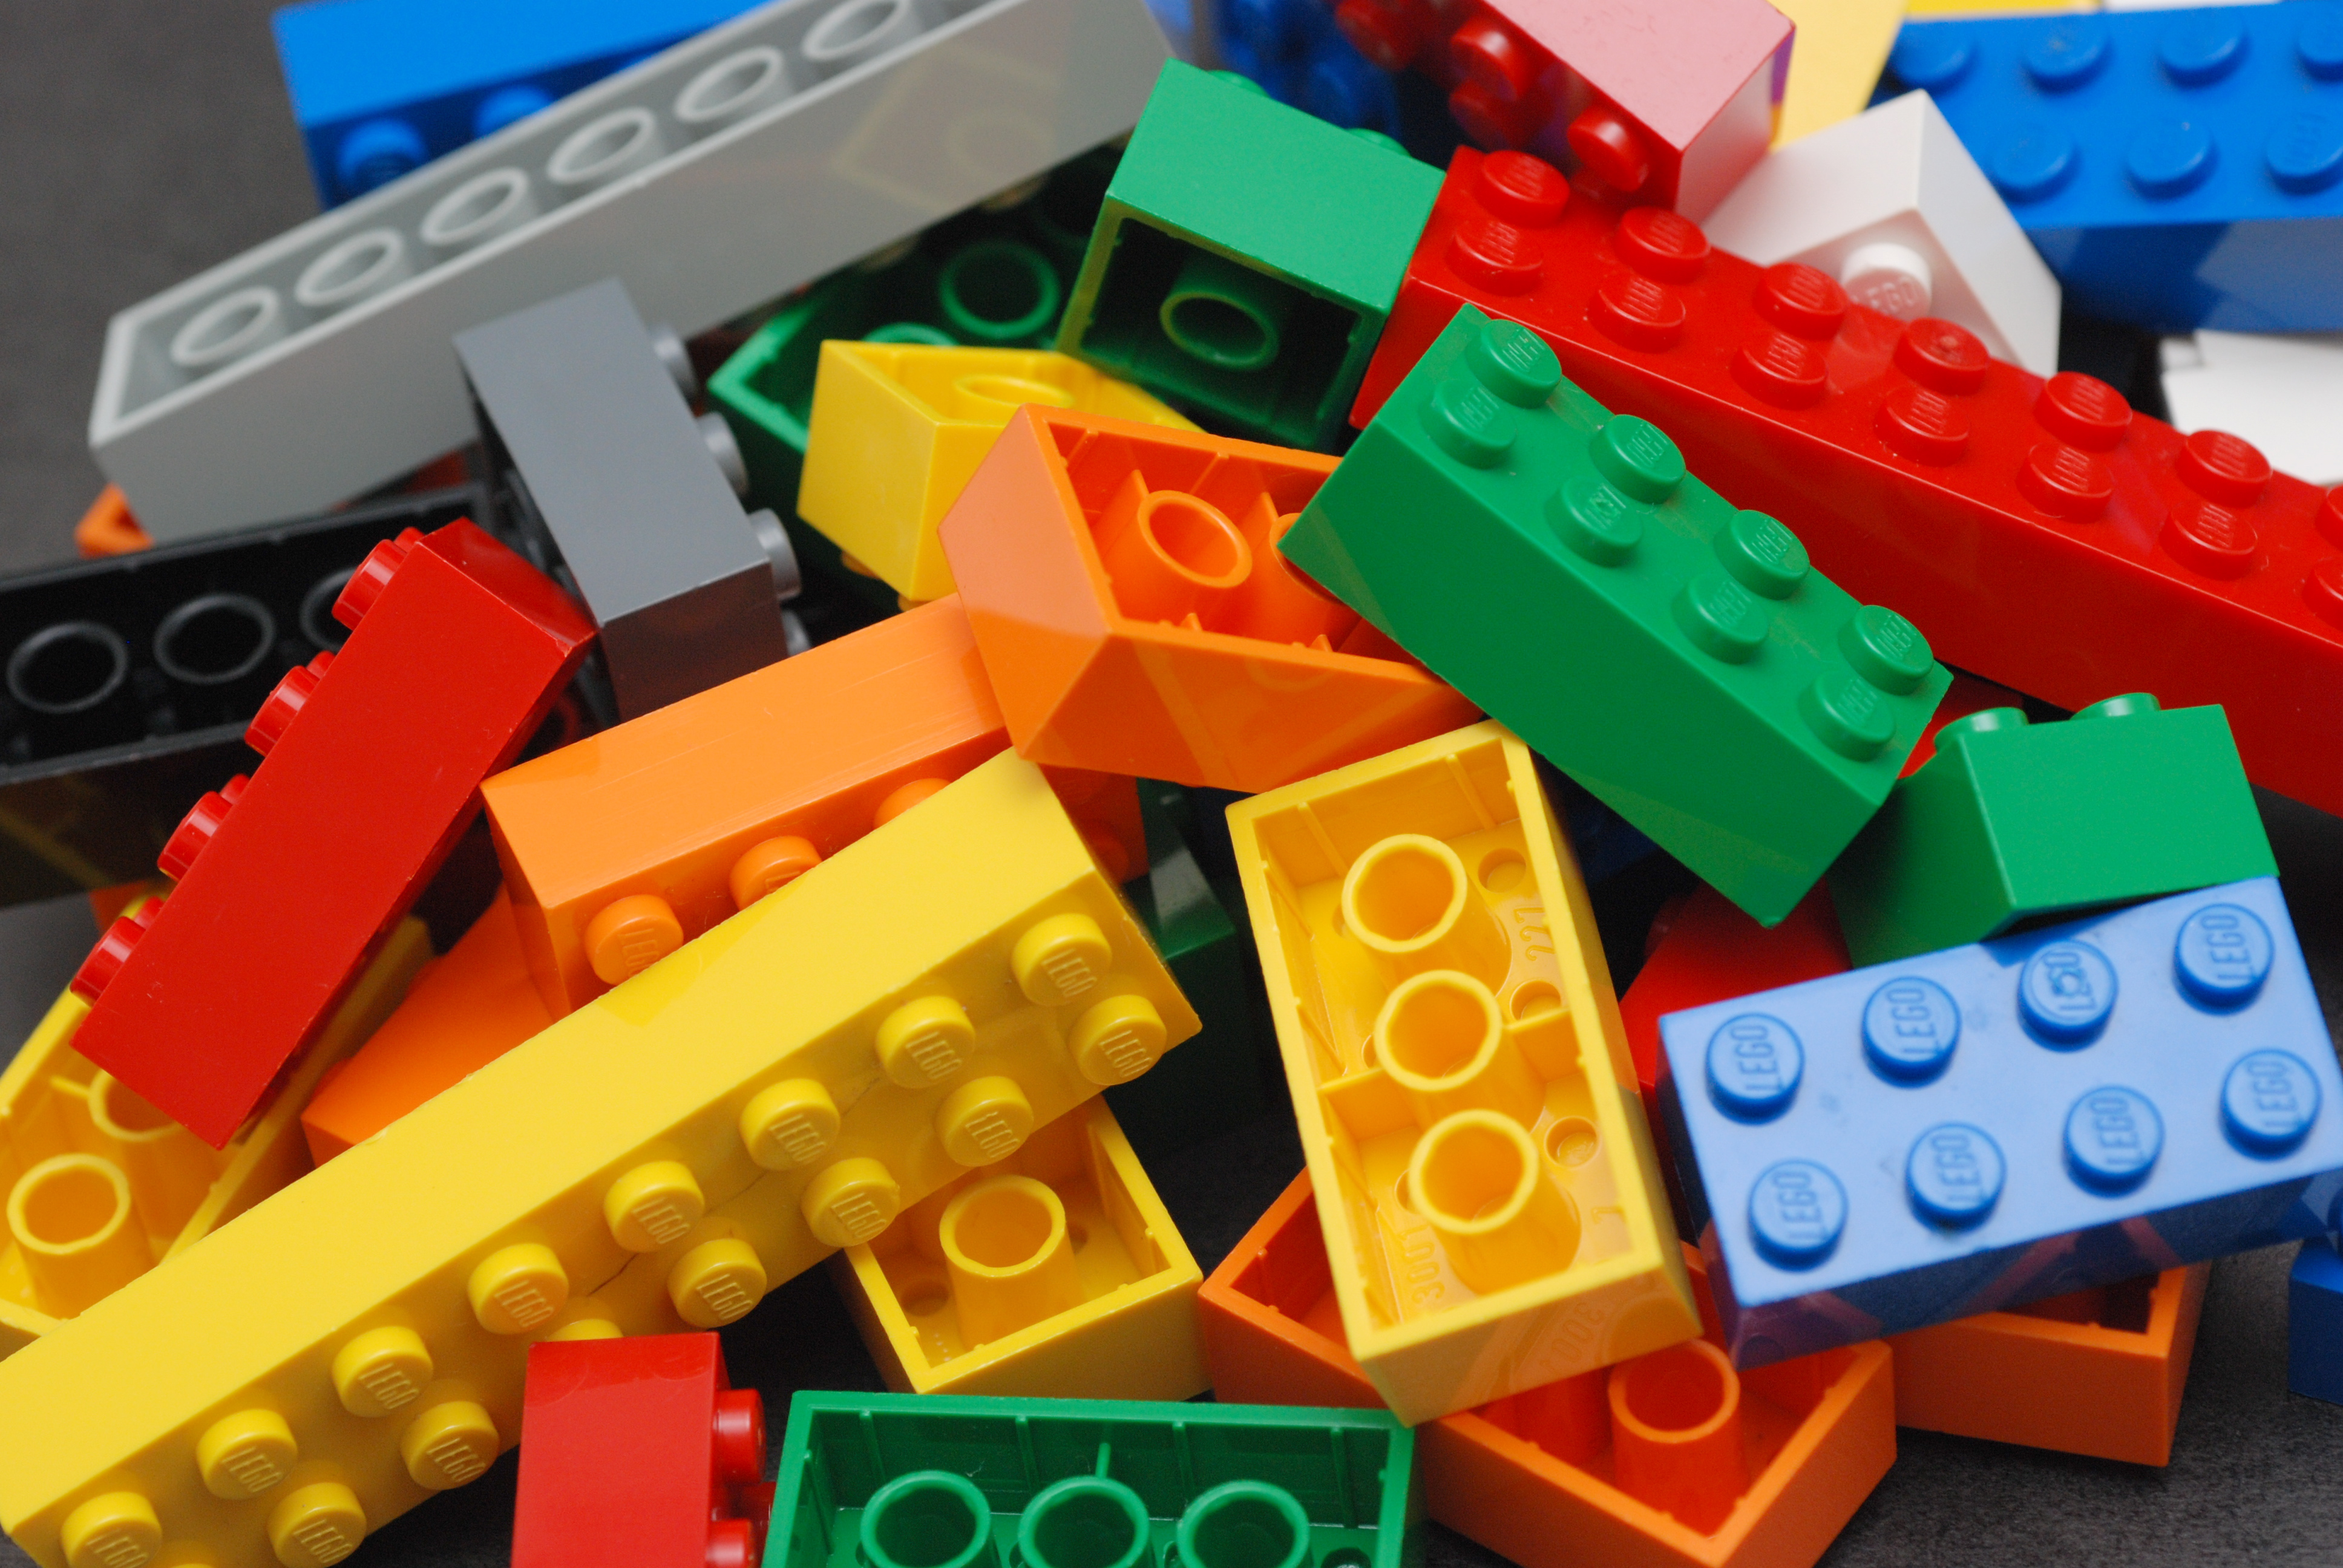 Description Lego Color Bricks.jpg